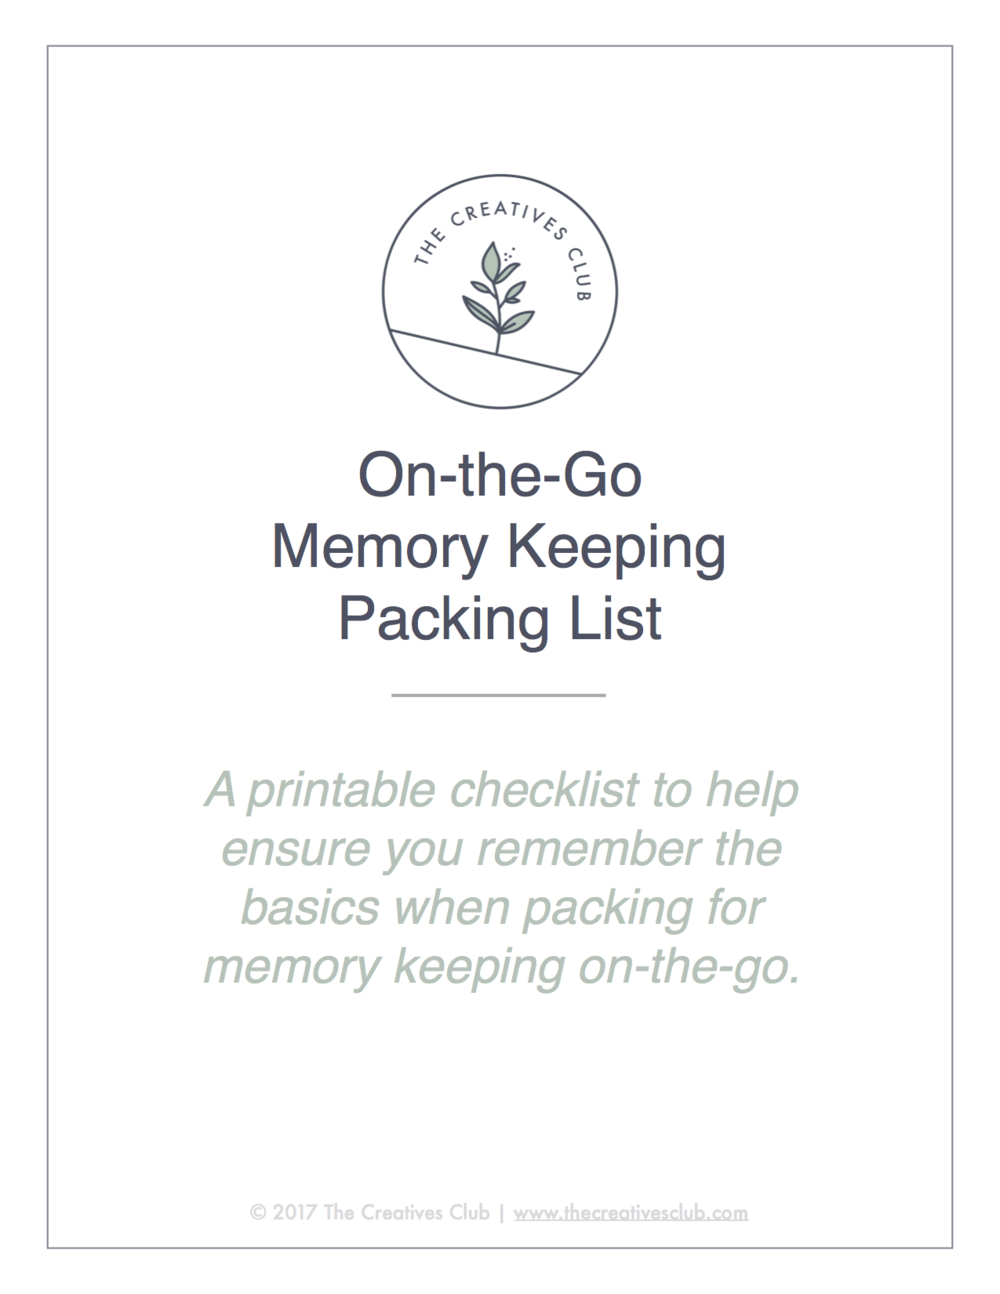 On-the-Go Mem Keeping Packing List.png